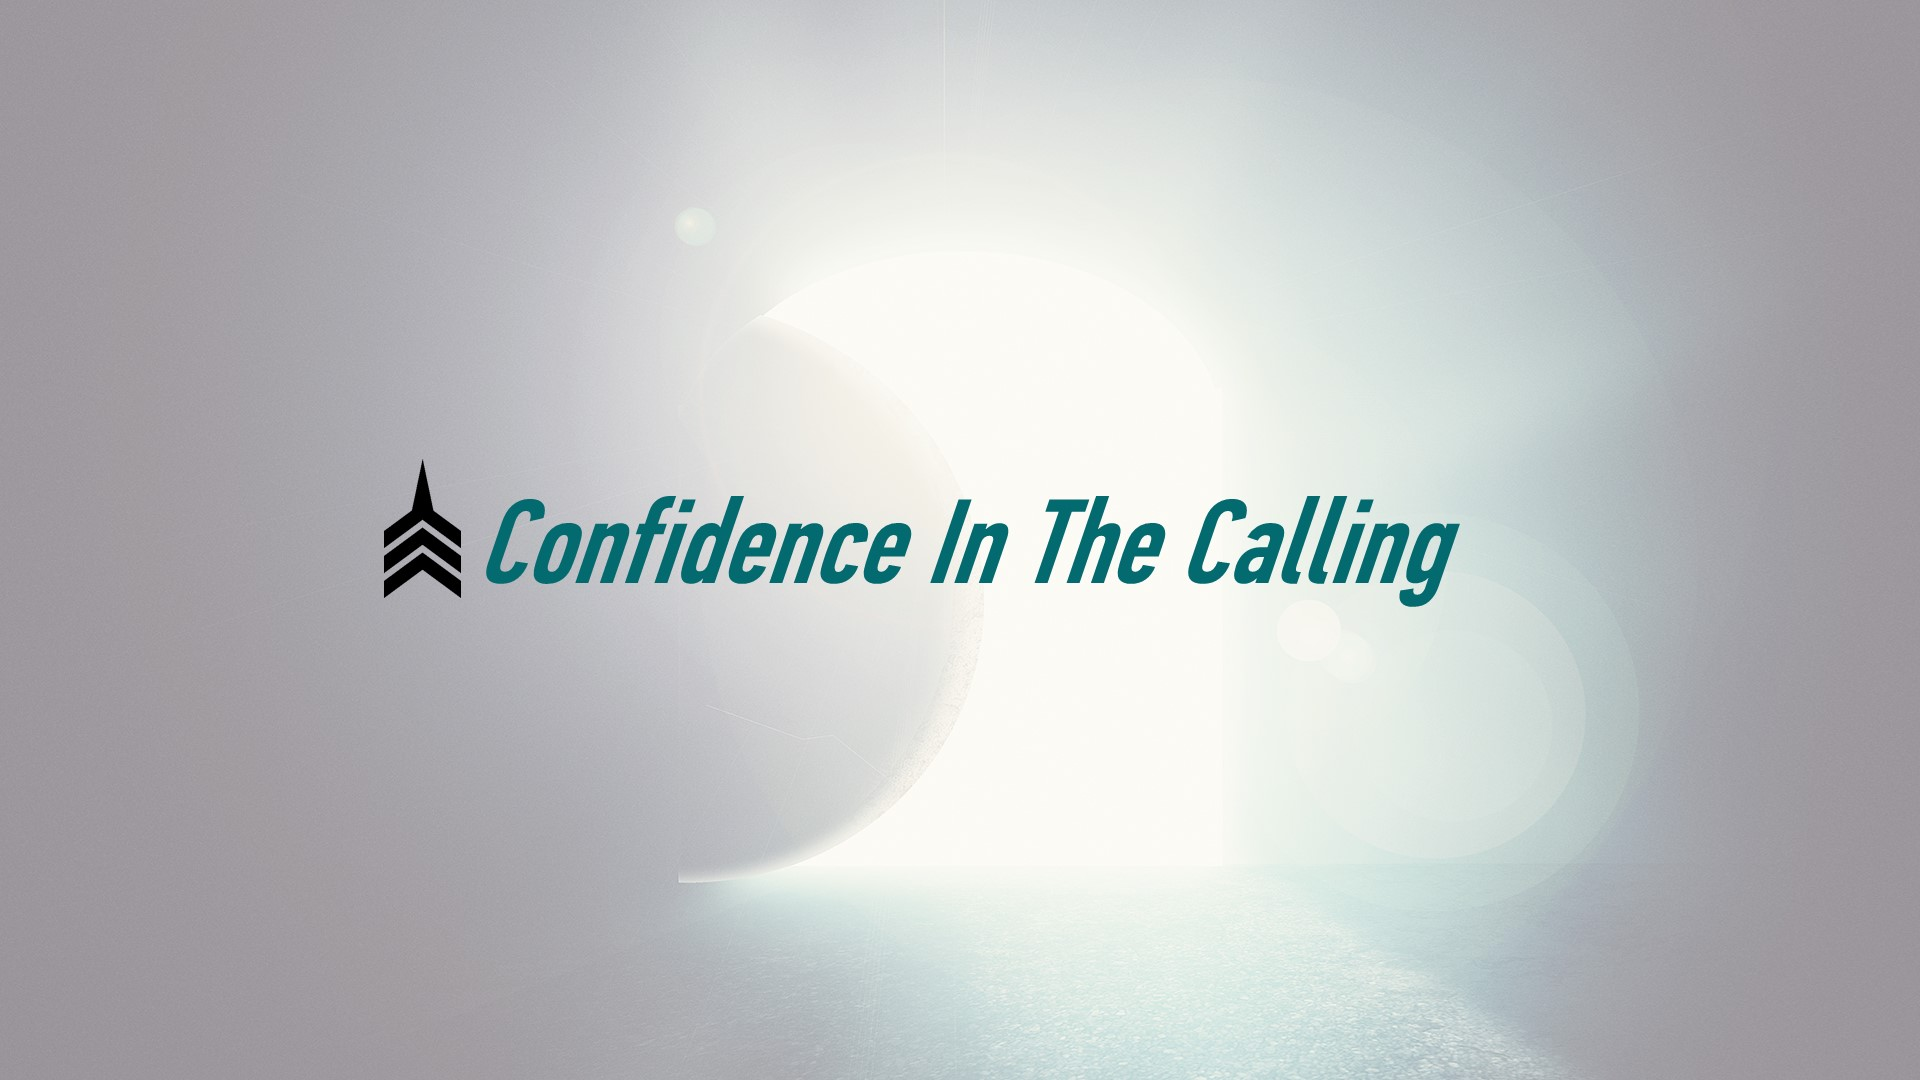 Confidence In The Calling.JPG